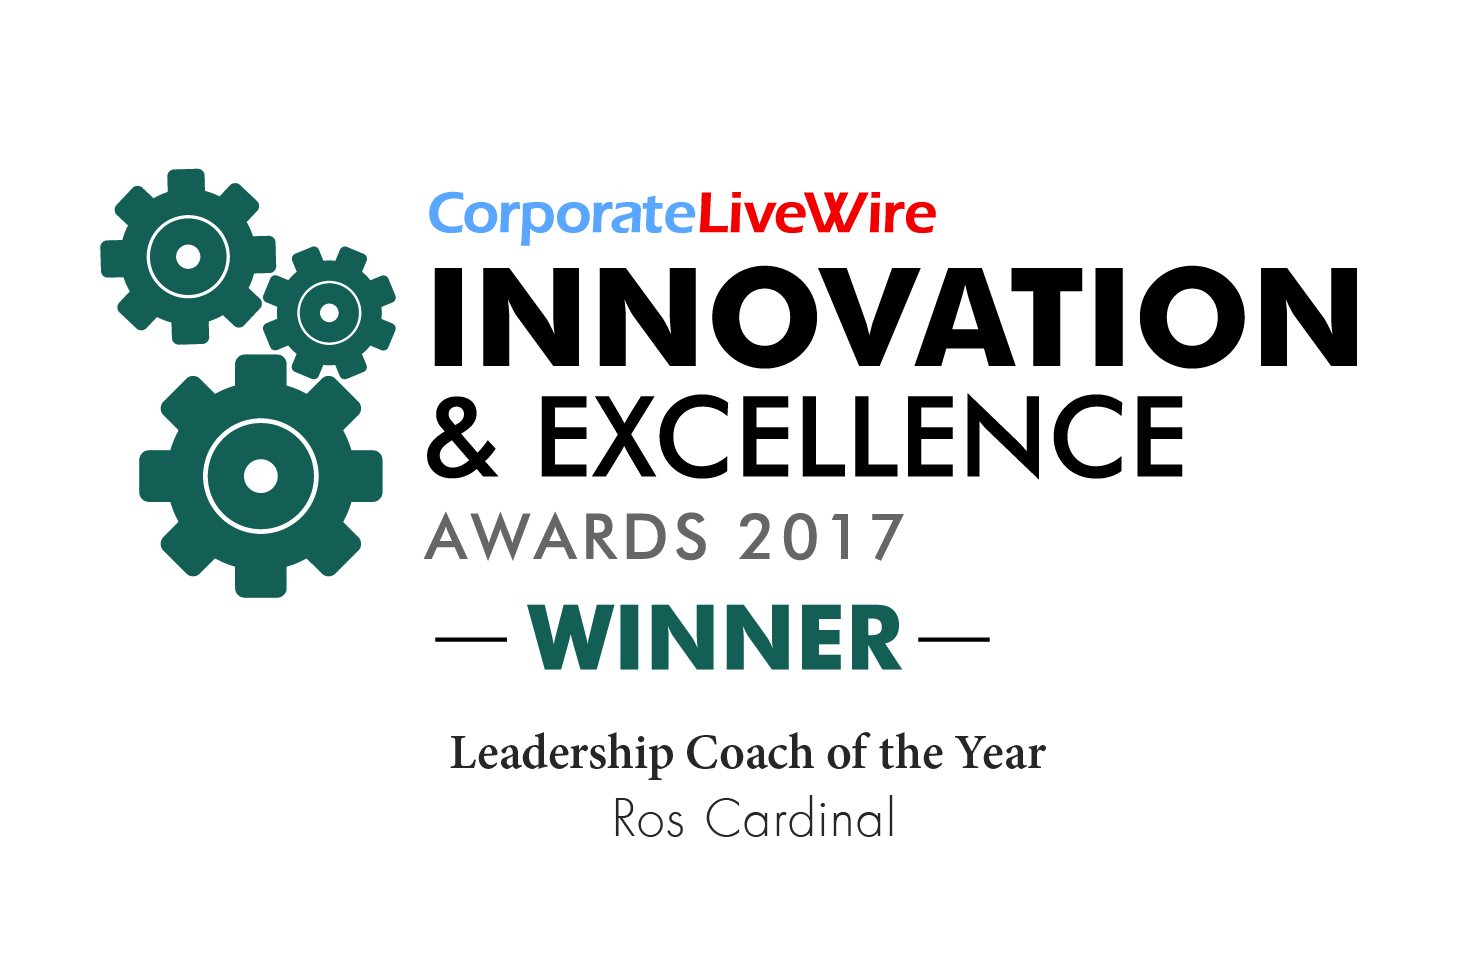 Image: Corporate LiveWire Innovation and Excellence awards 2017 Logo.